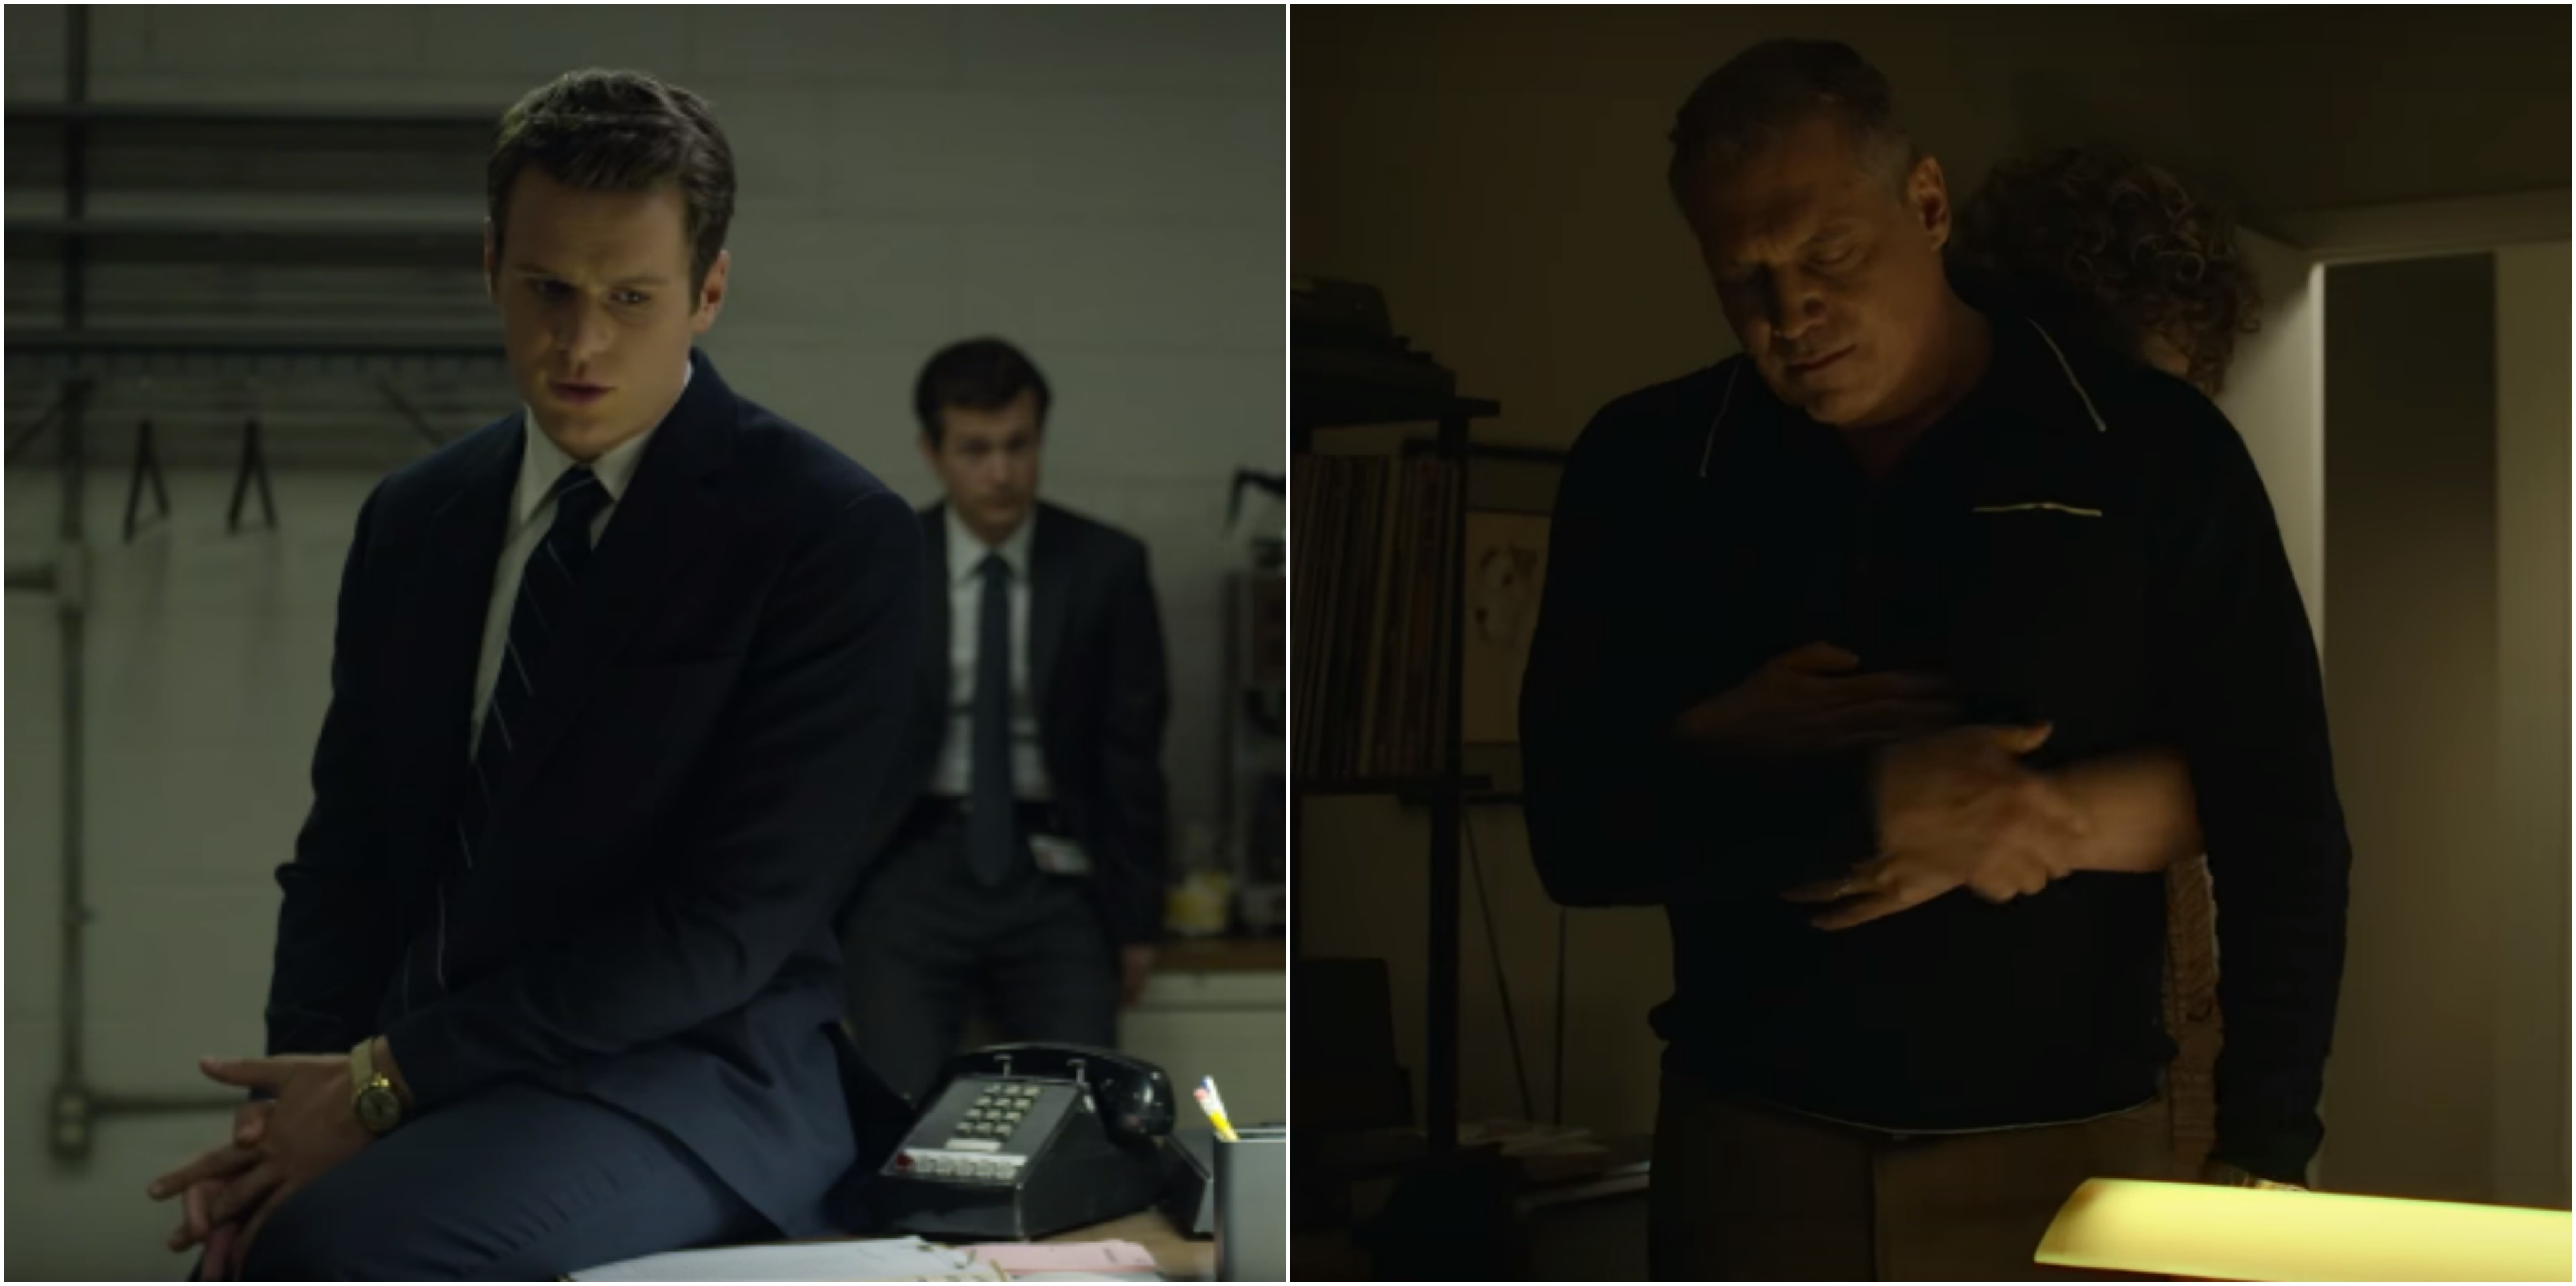 Jonathan Groff as Holden Ford (left), and Holt McCallany as Bill Tench in Mindhunter.